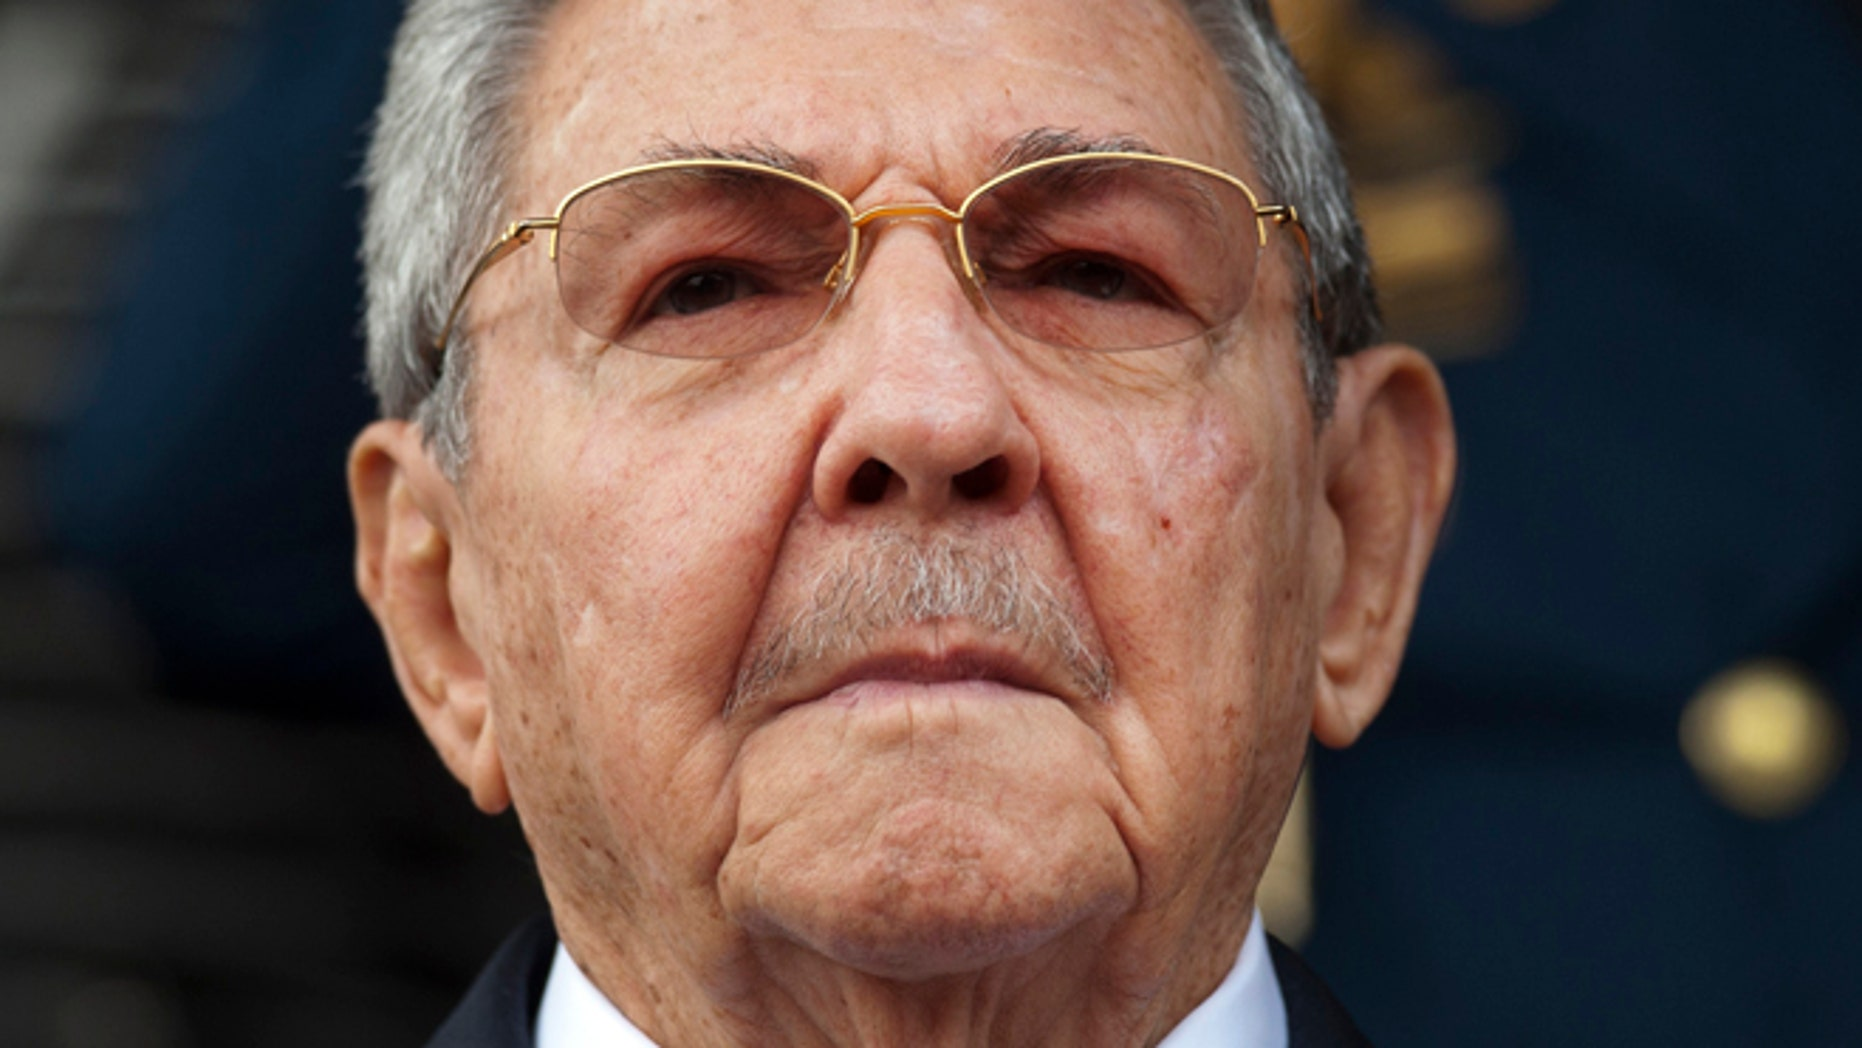 Cuba's President Raul Castro listens to the playing of national hymns during his welcome ceremony at Miraflores presidential palace before the start of an emergency ALBA meeting in Caracas, Venezuela, Tuesday, March 17, 2015. Leftist allies of Venezuela on Tuesday rallied behind embattled President Nicolas Maduro in his faceoff with the U.S. government, which he is accusing of trying to oust his socialist administration. (AP Photo/Ariana Cubillos)